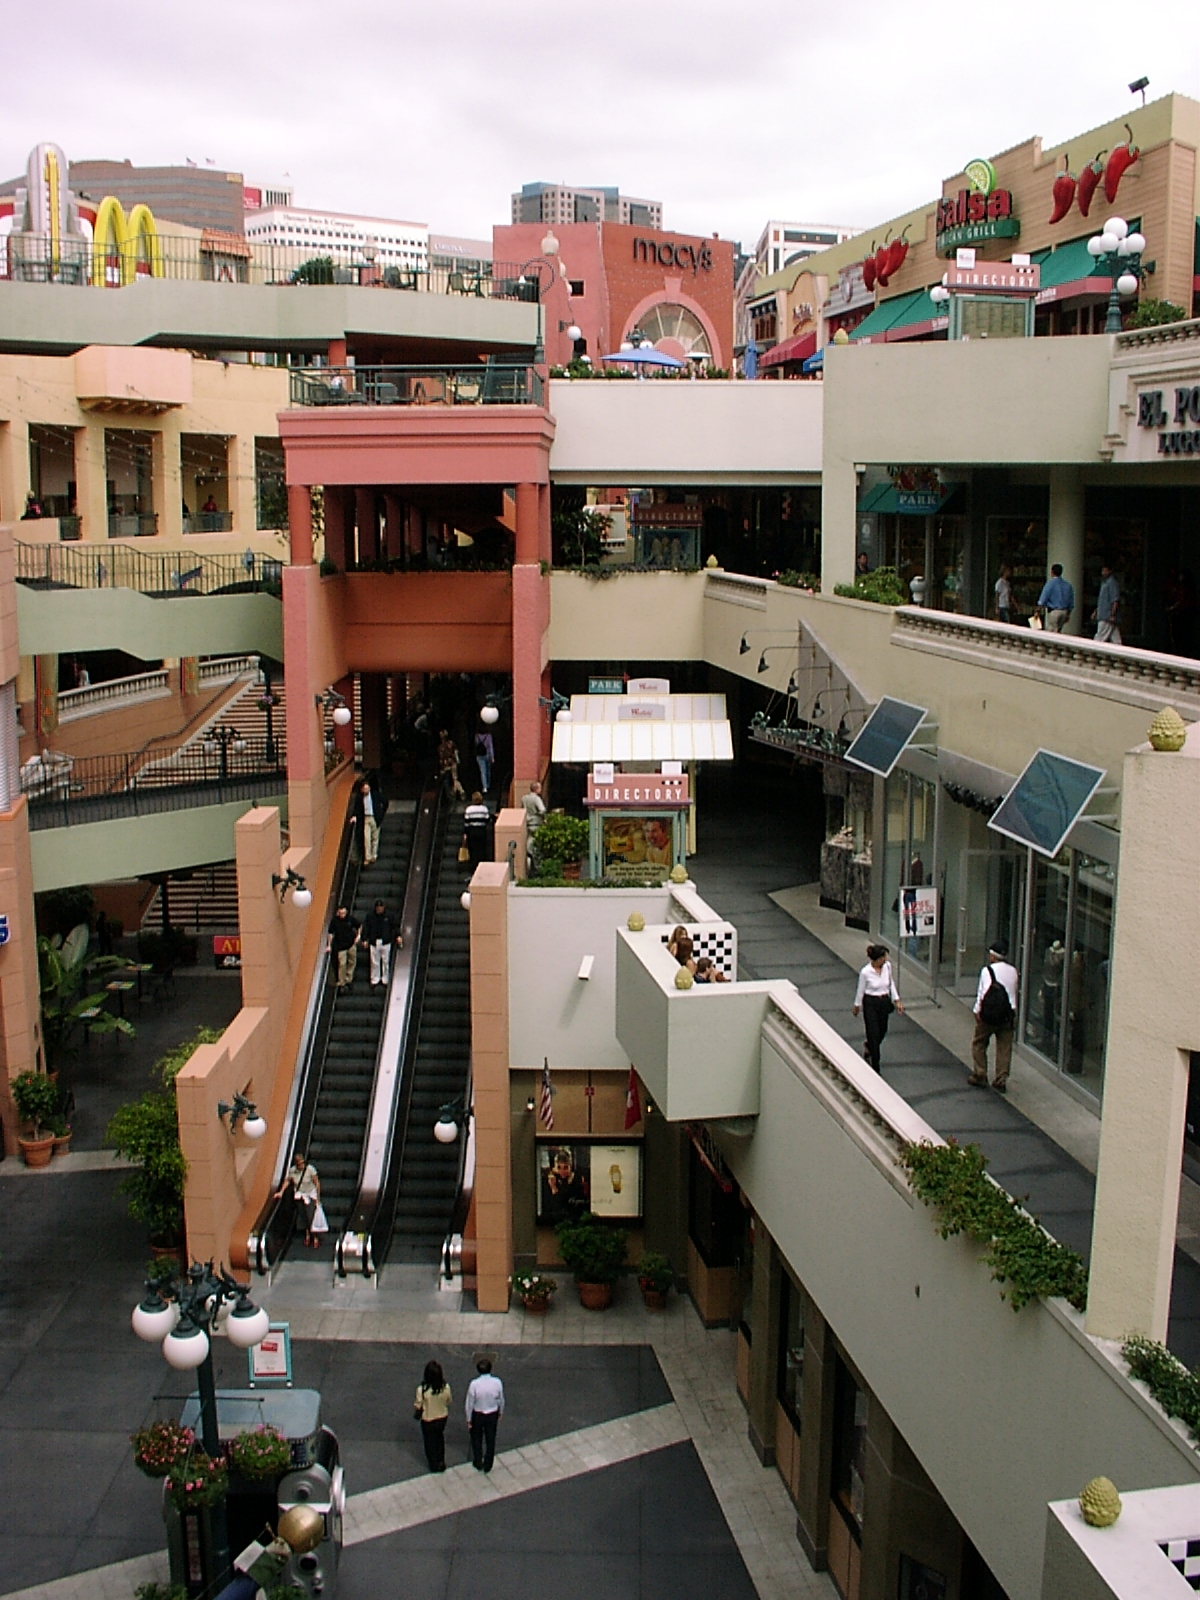 An iconic downtown San Diego destination, Westfield Horton Plaza is located in the heart of the Gaslamp Quarter and within walking distance of the Convention Center, Petco Park, and the Cruise Ship Terminal. Horton Plaza is the hub of Downtown San Diego art, community, entertainment, and shopping. /5().